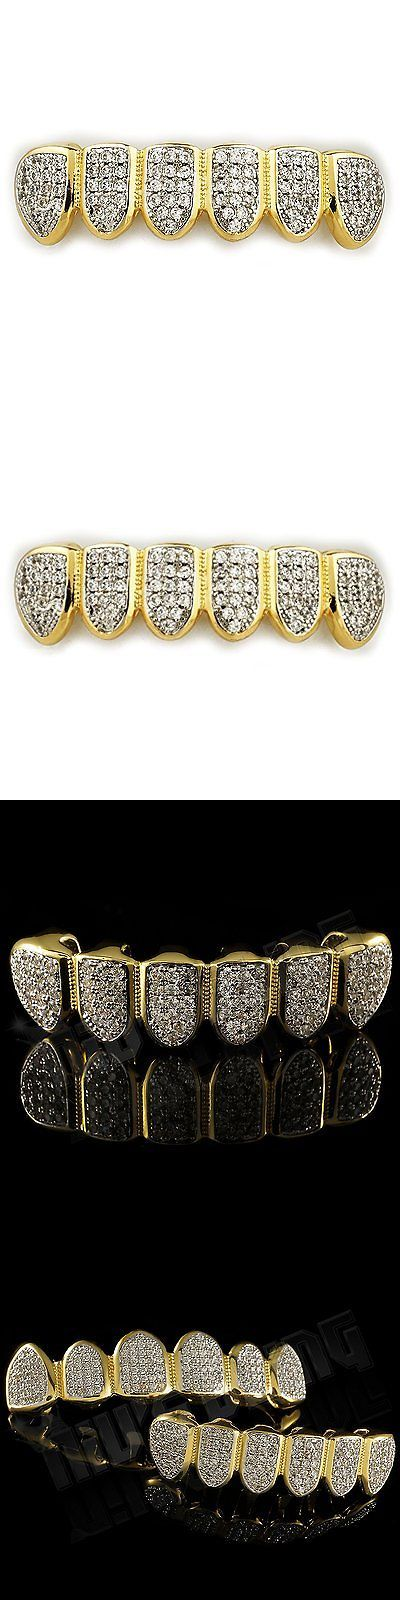 Grillz Dental Grills 152808: 18K Gold Plated Cz Micro Pave Top Bottom Custom Grillz Set Rhodium Teeth Gril... -> BUY IT NOW ONLY: $54.64 on eBay!